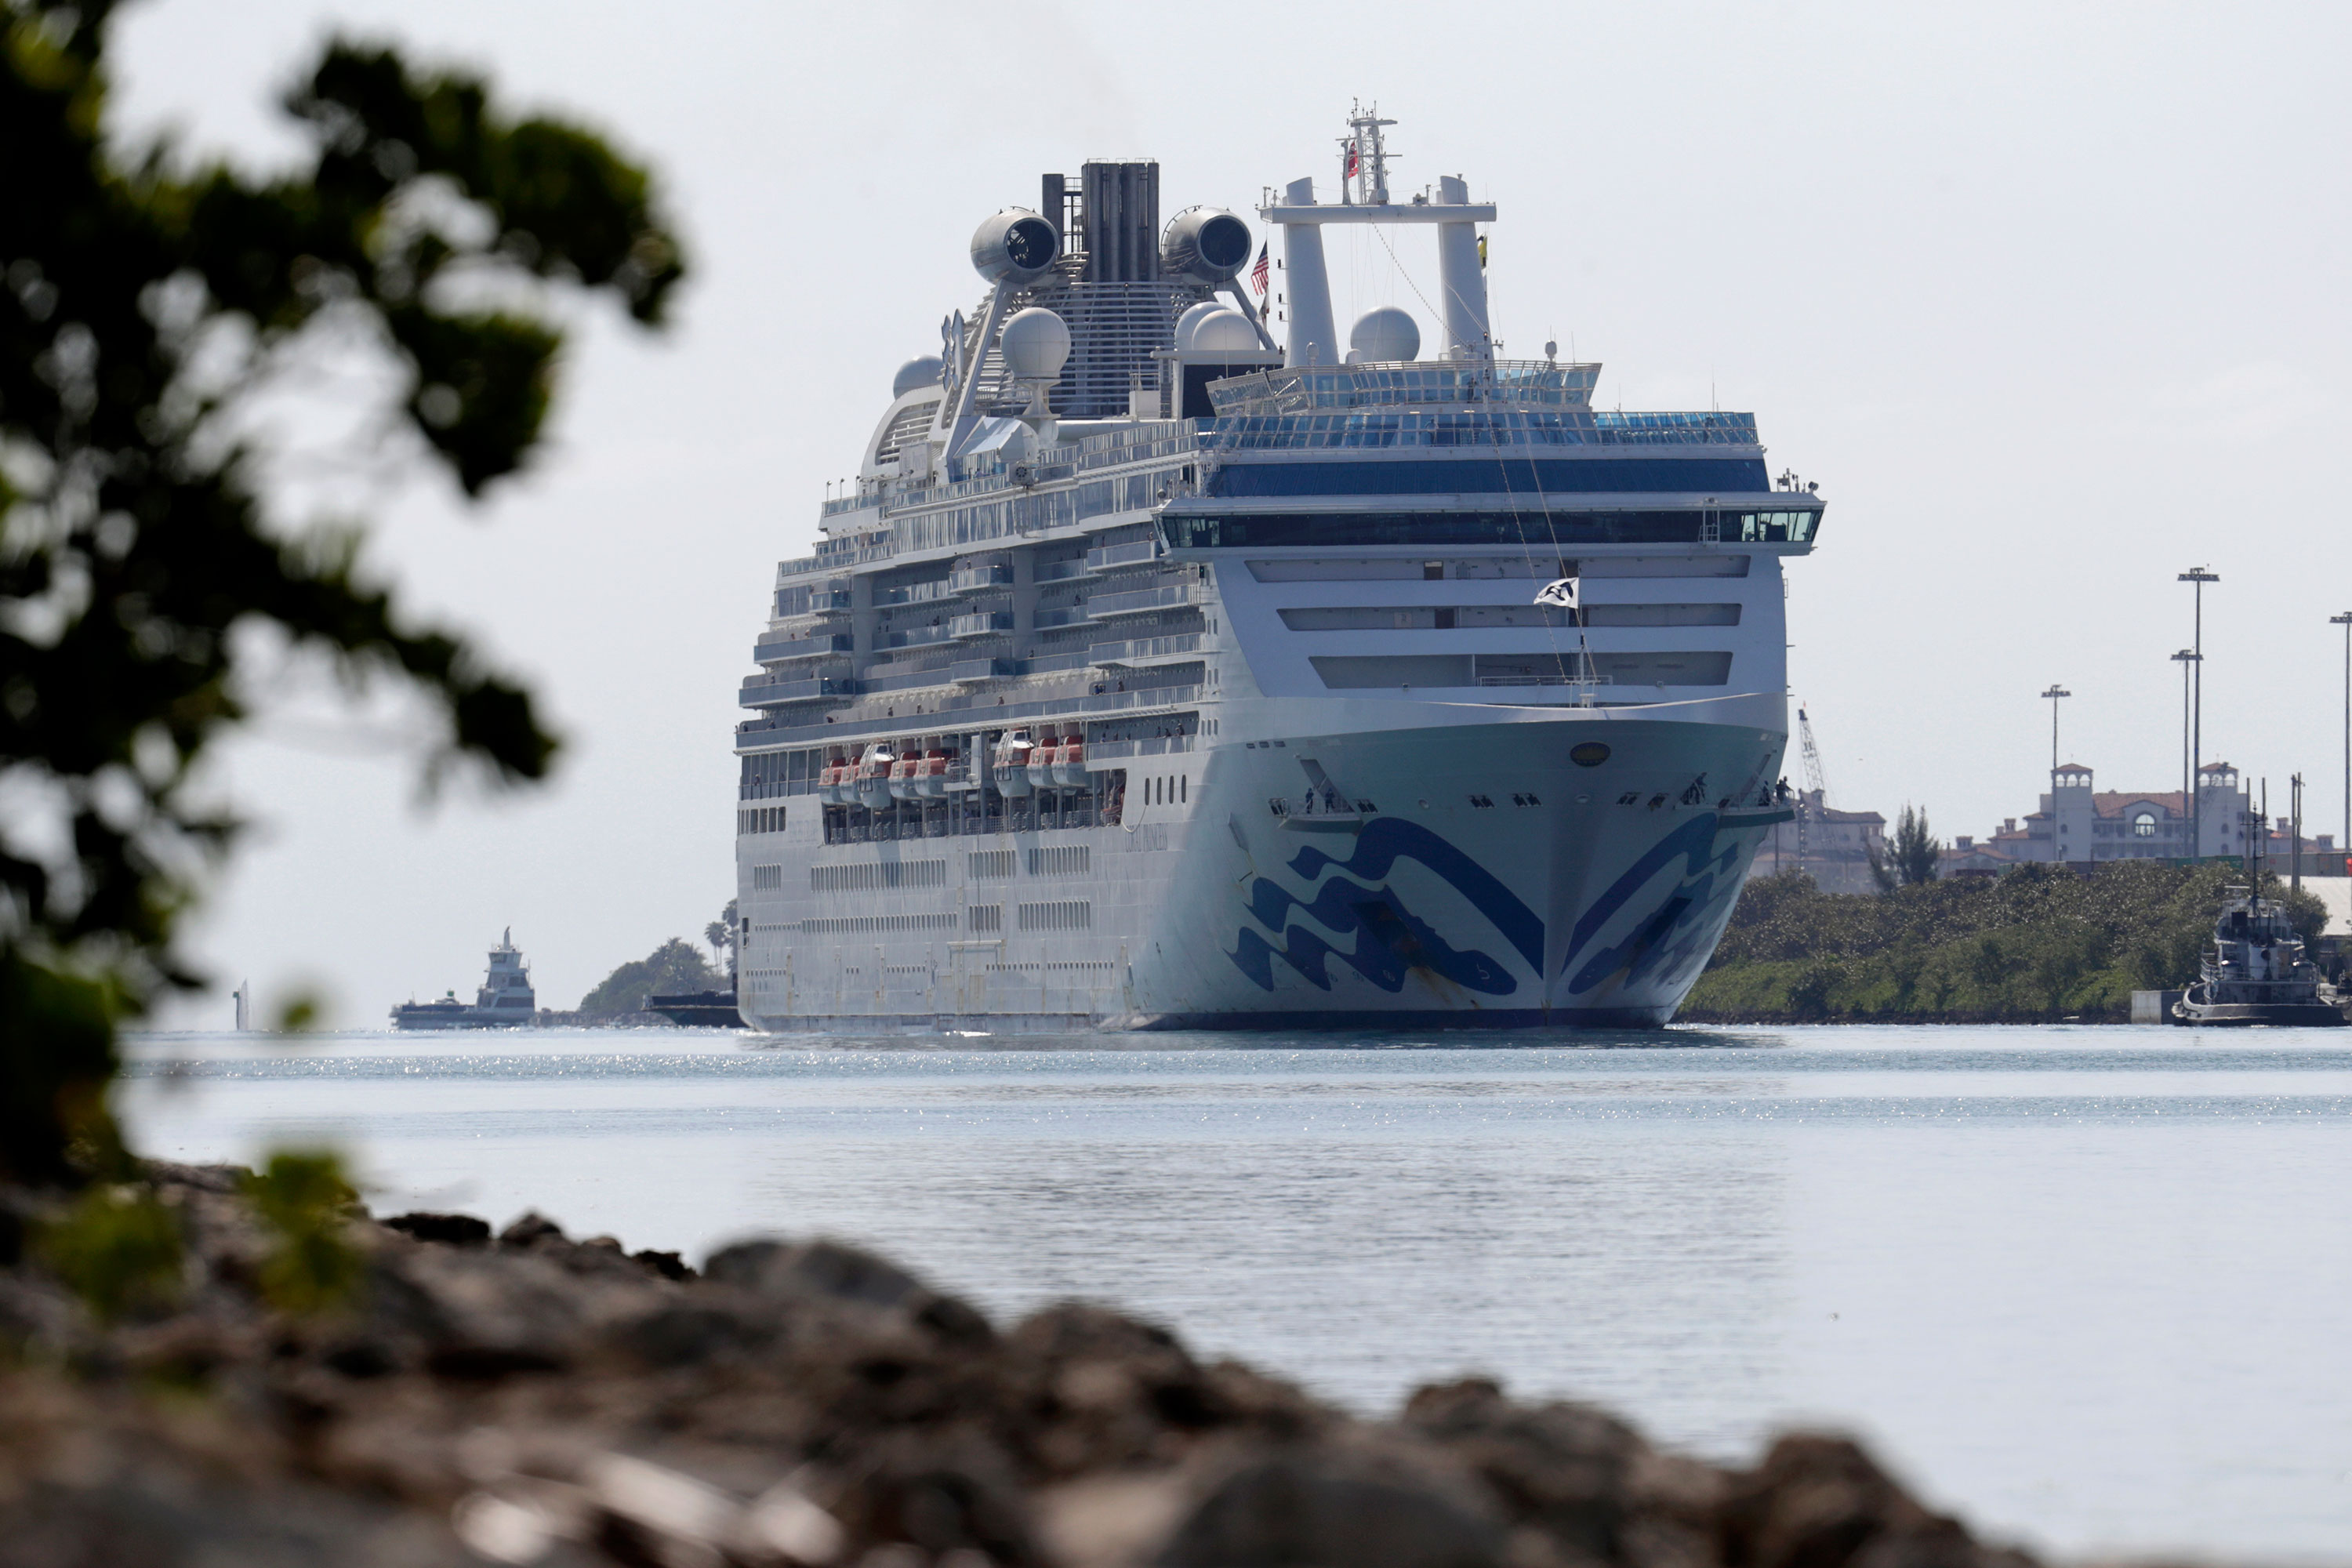 The Coral Princess cruise ship arrives in Miami on April 4.